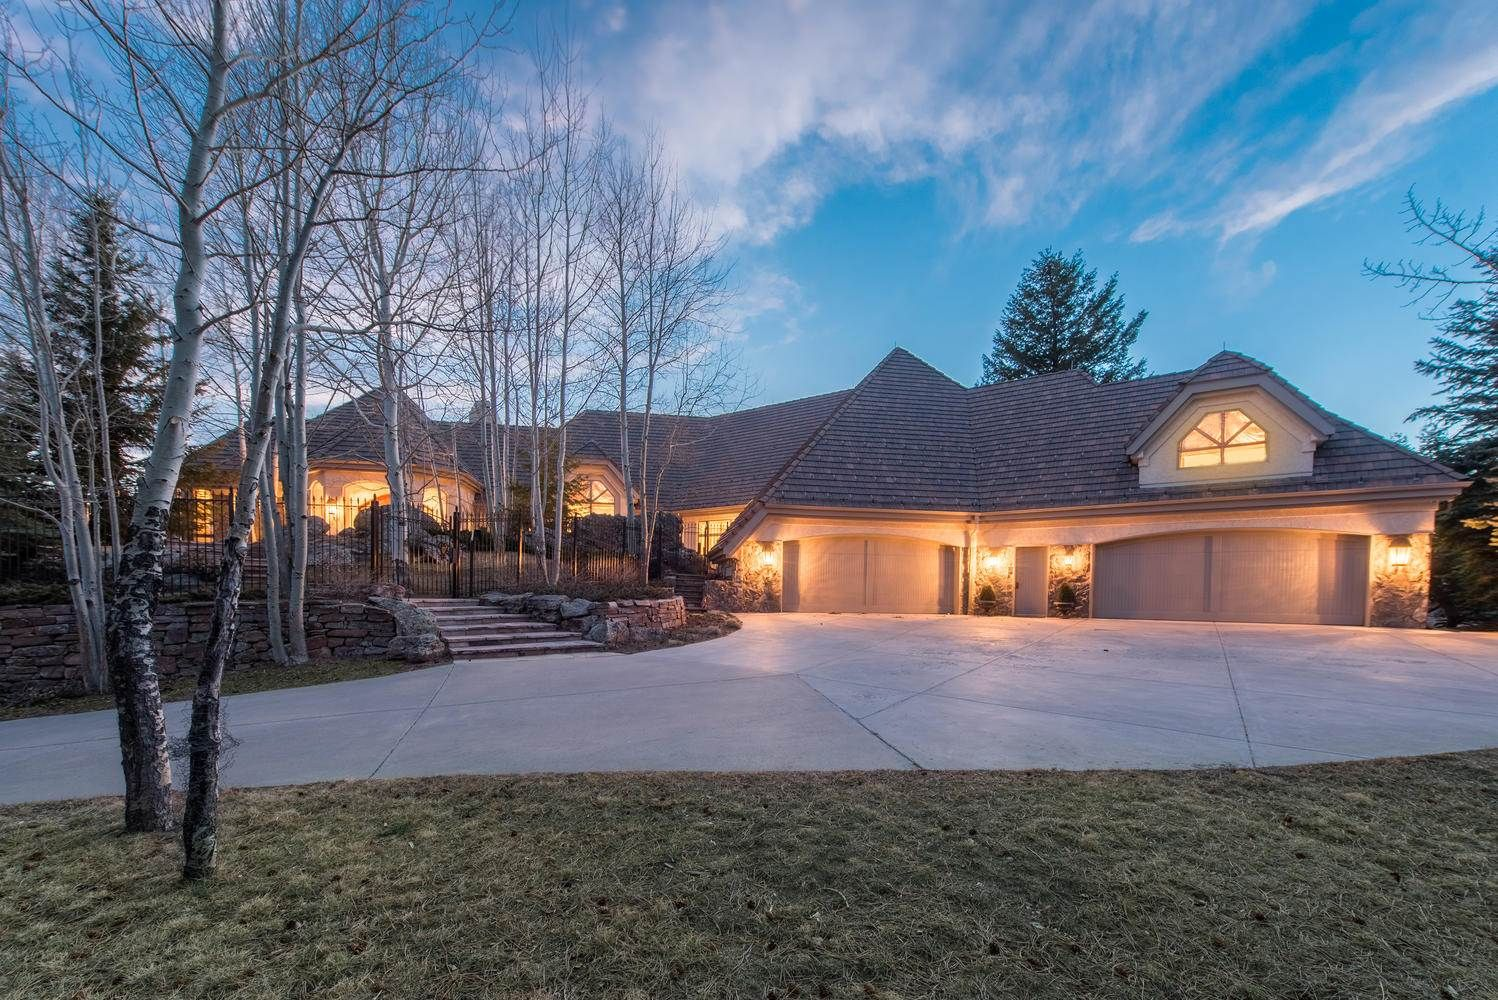 Extraordinary property of the day majestic foothills residence with